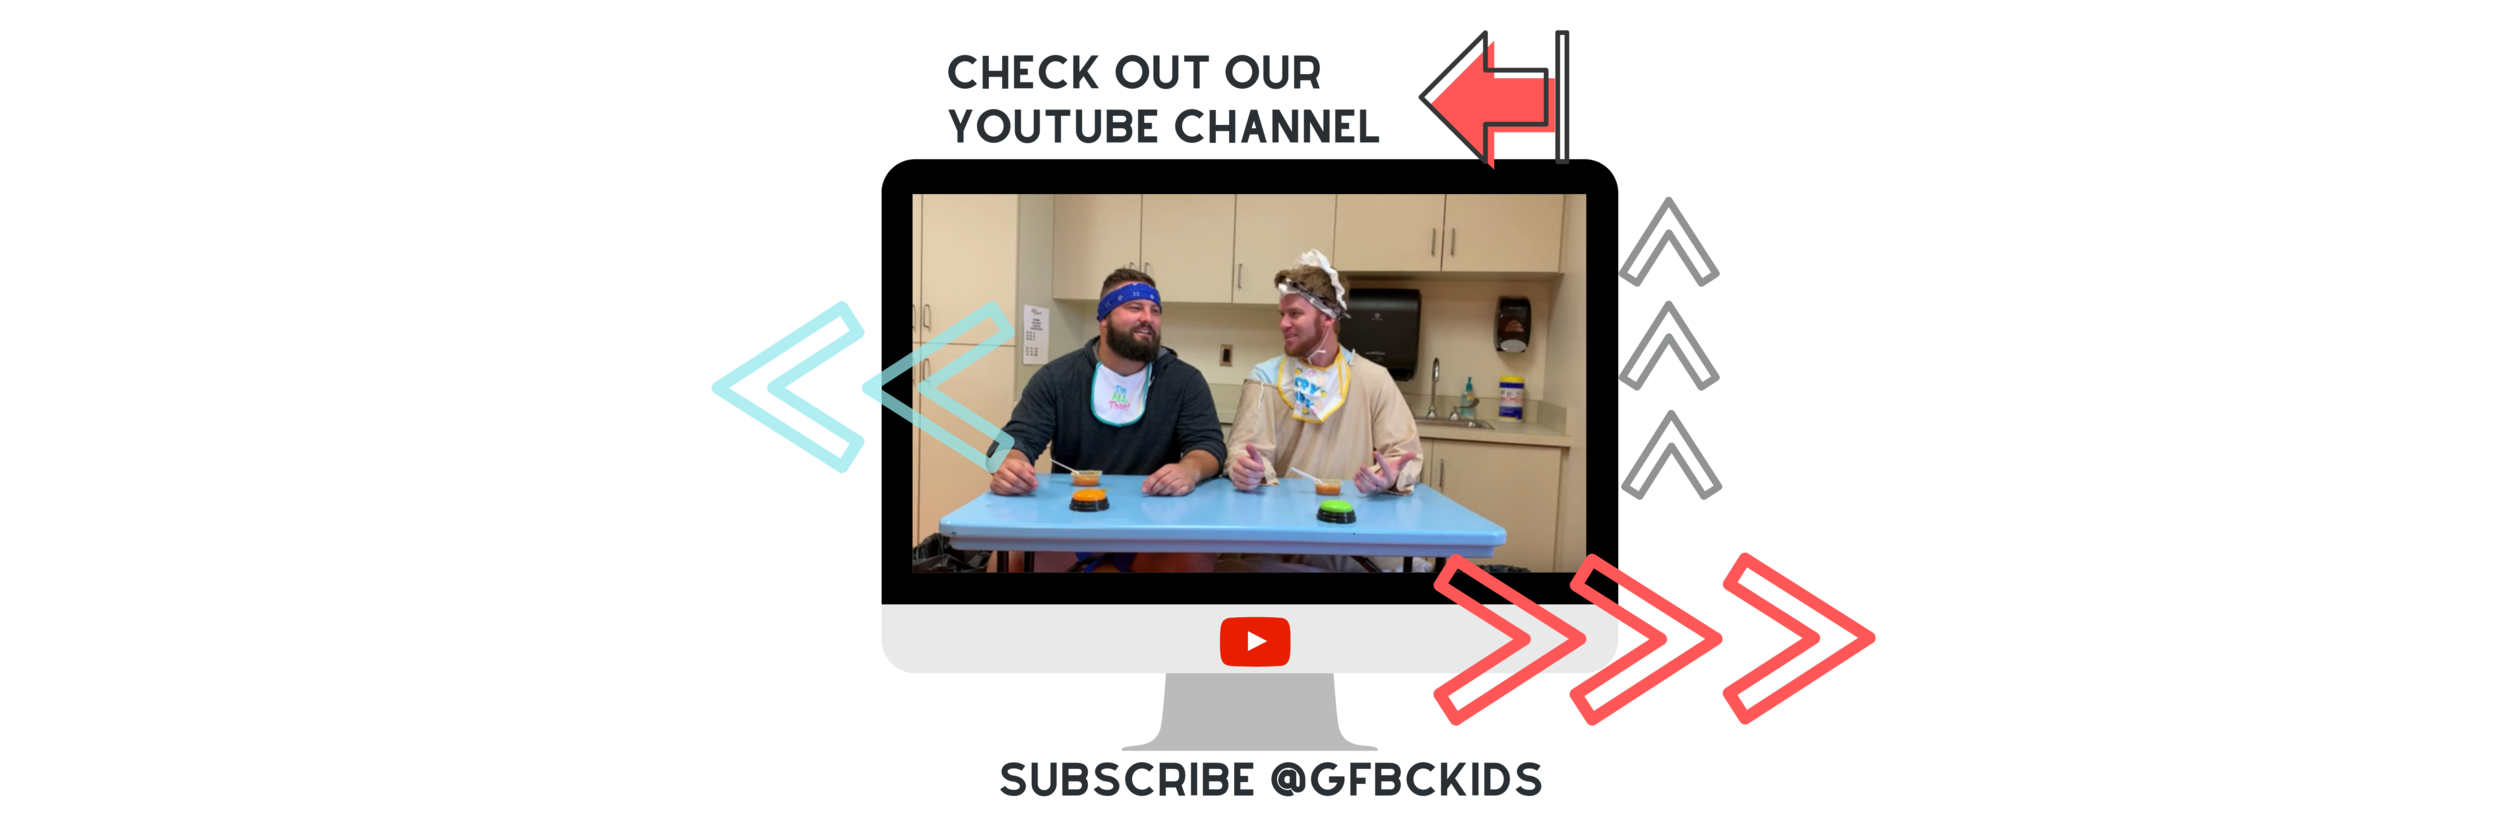 Copy of Copy of Check out our new Youtube Channel.png